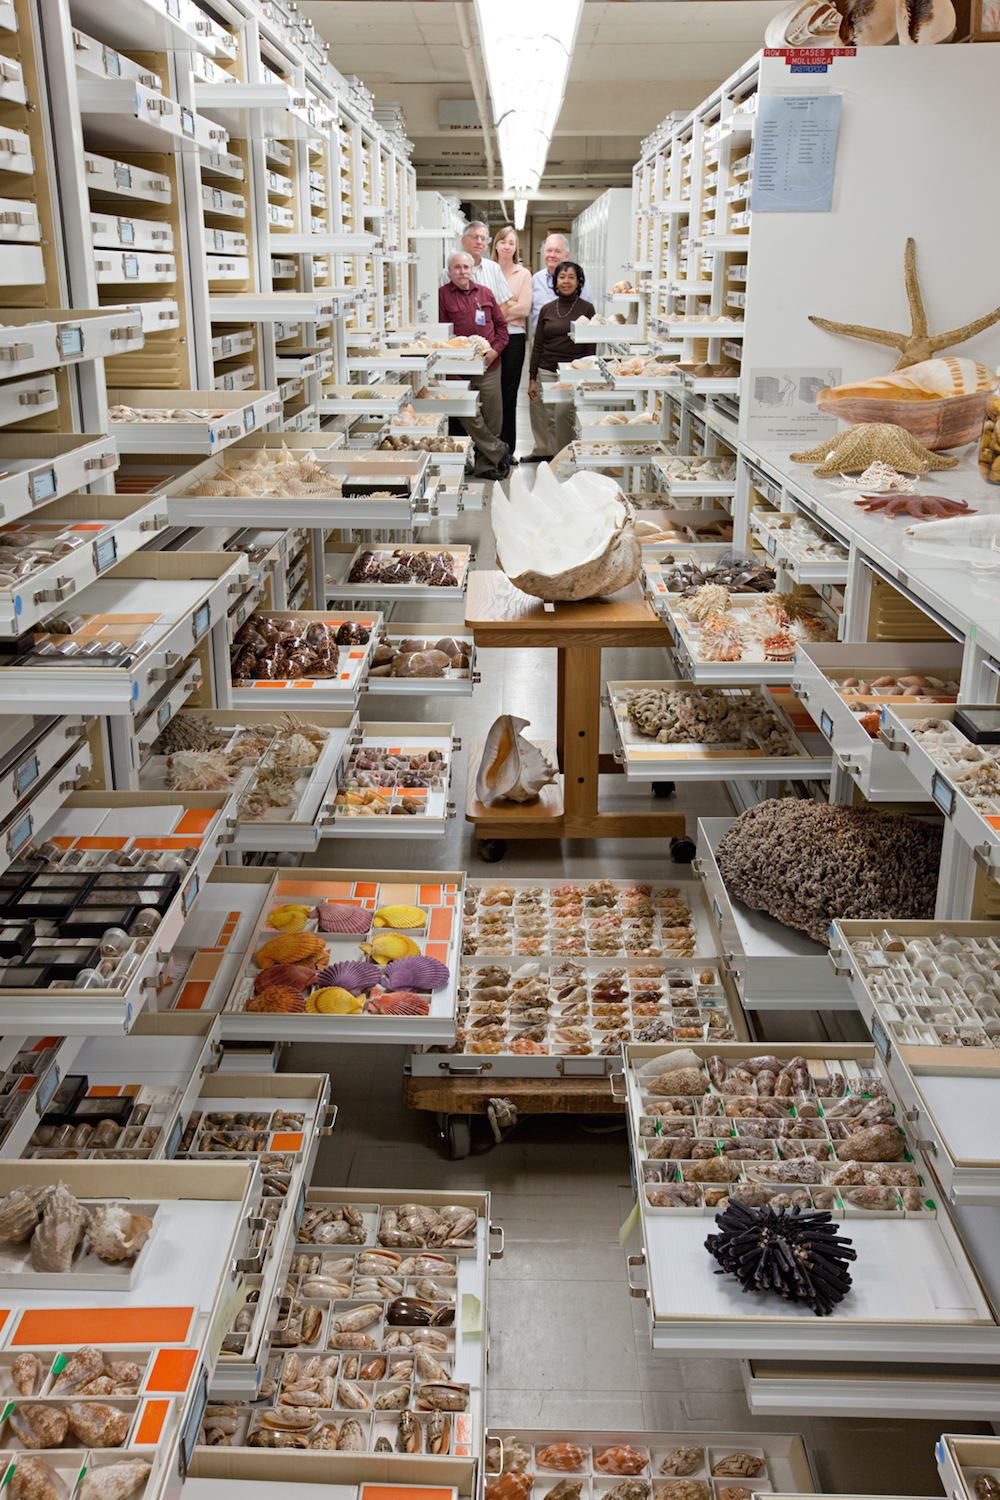 Collections from the Department of Invertebrate Zoology are displayed at the Smithsonian Institution